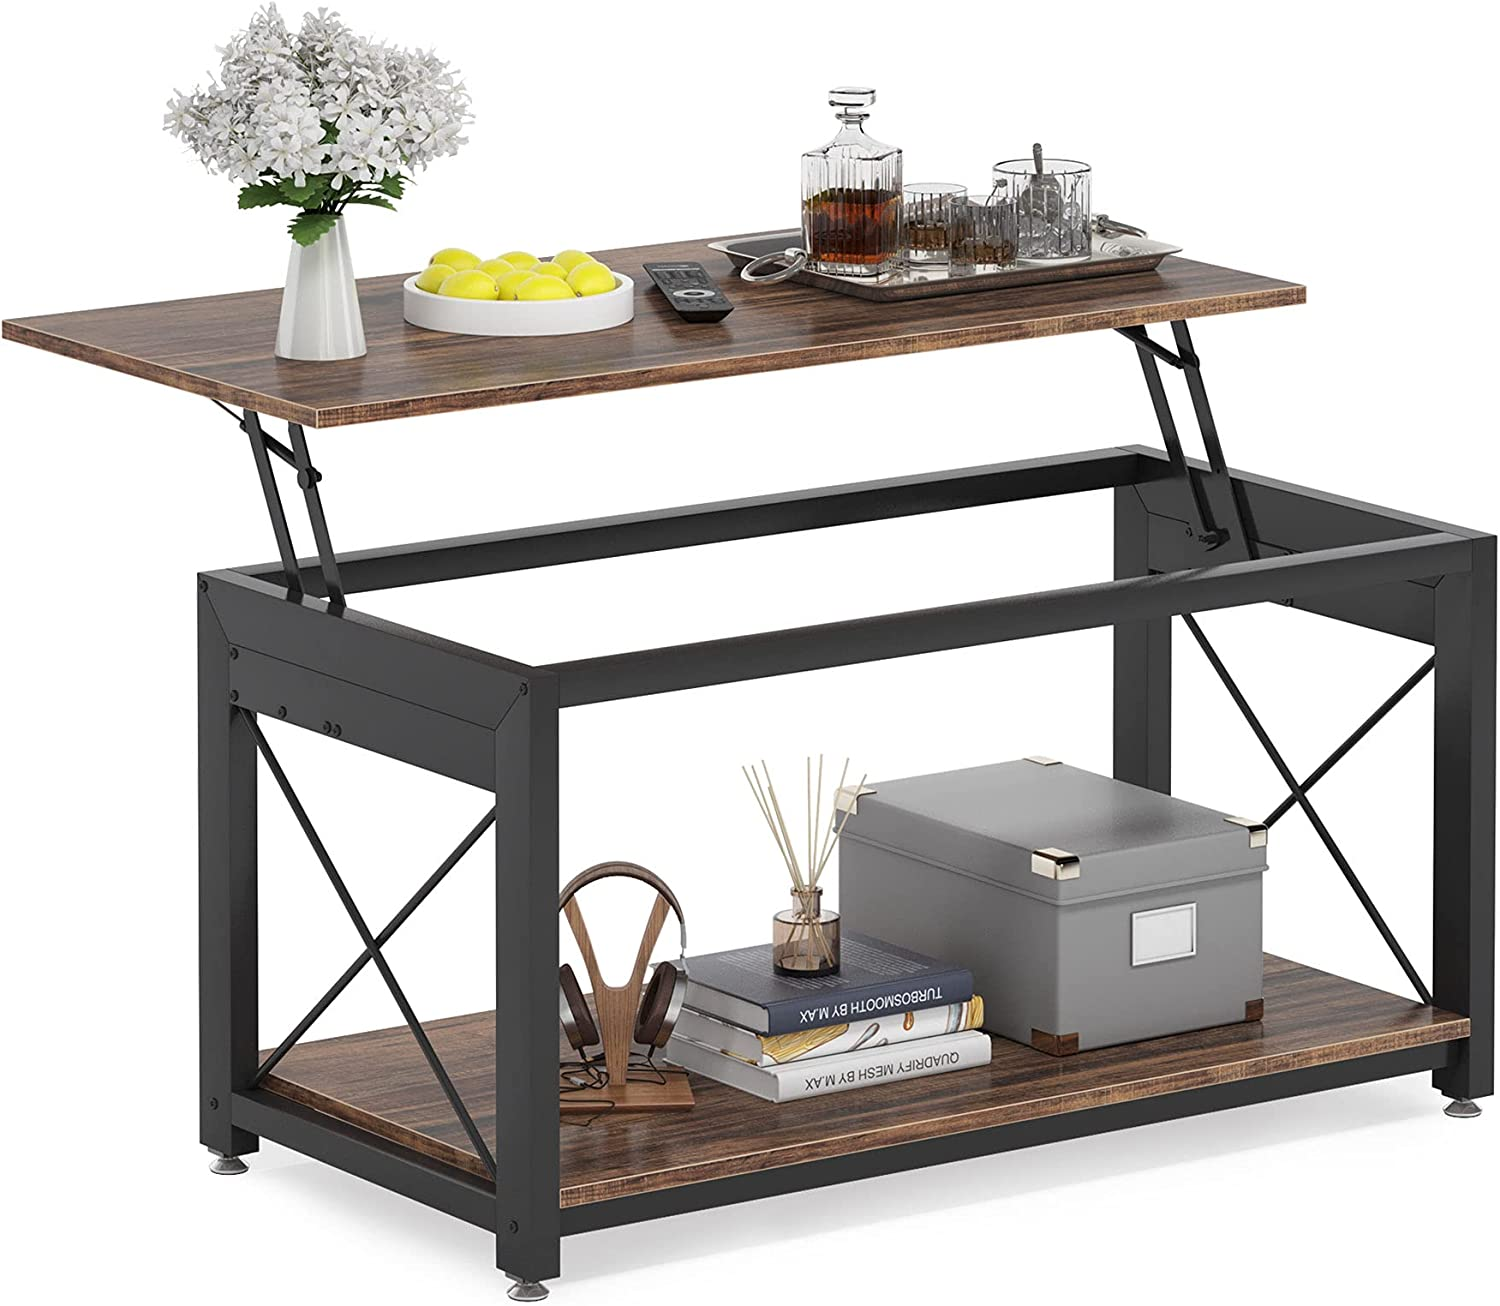 Tribesigns Super-cheap Coffee Table Inexpensive Lift Top Industrial X Work 2-Tier